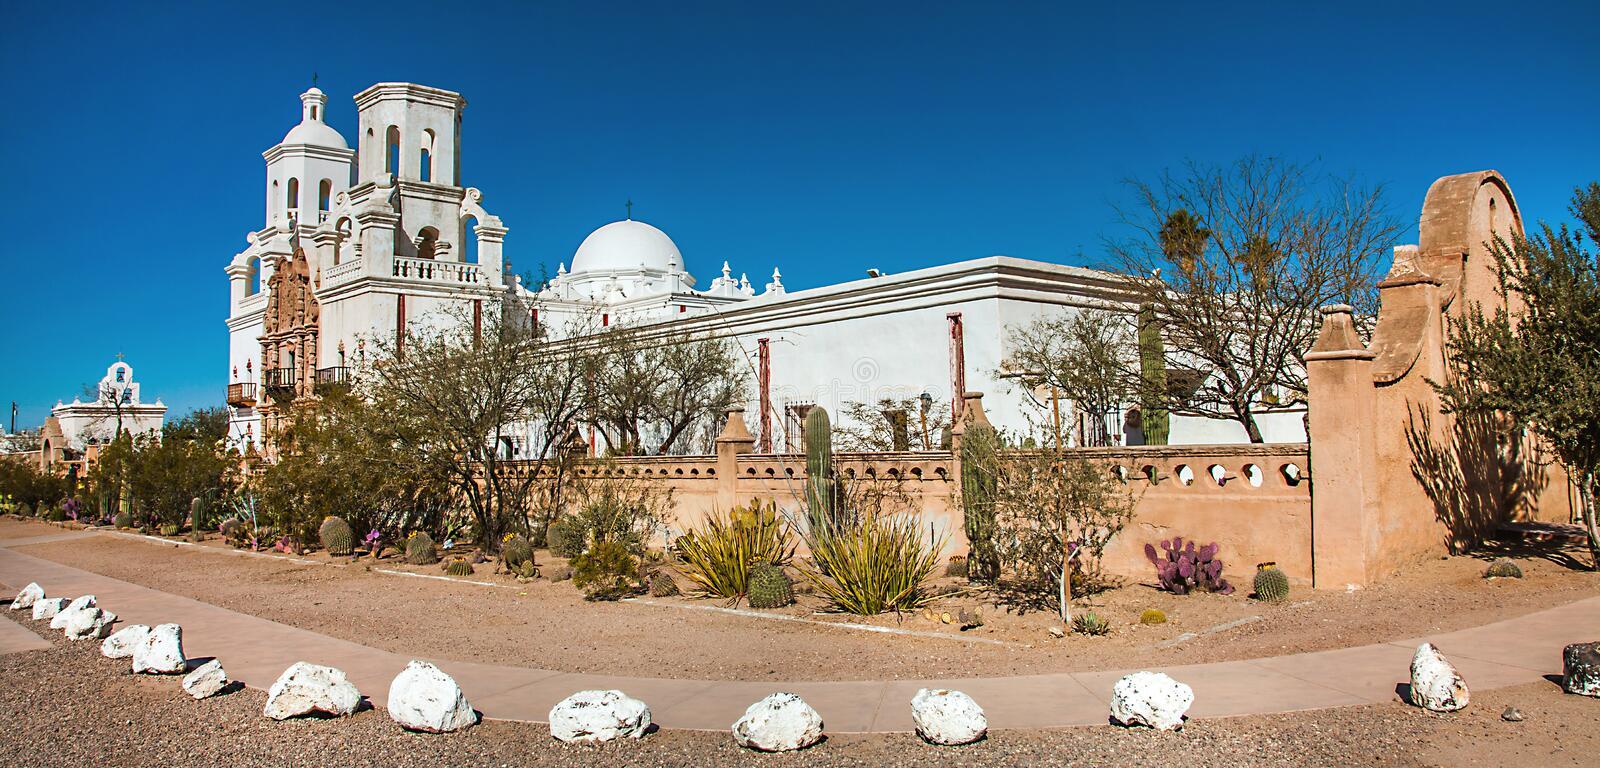 Mission San Xavier del Bac Tucson image stock